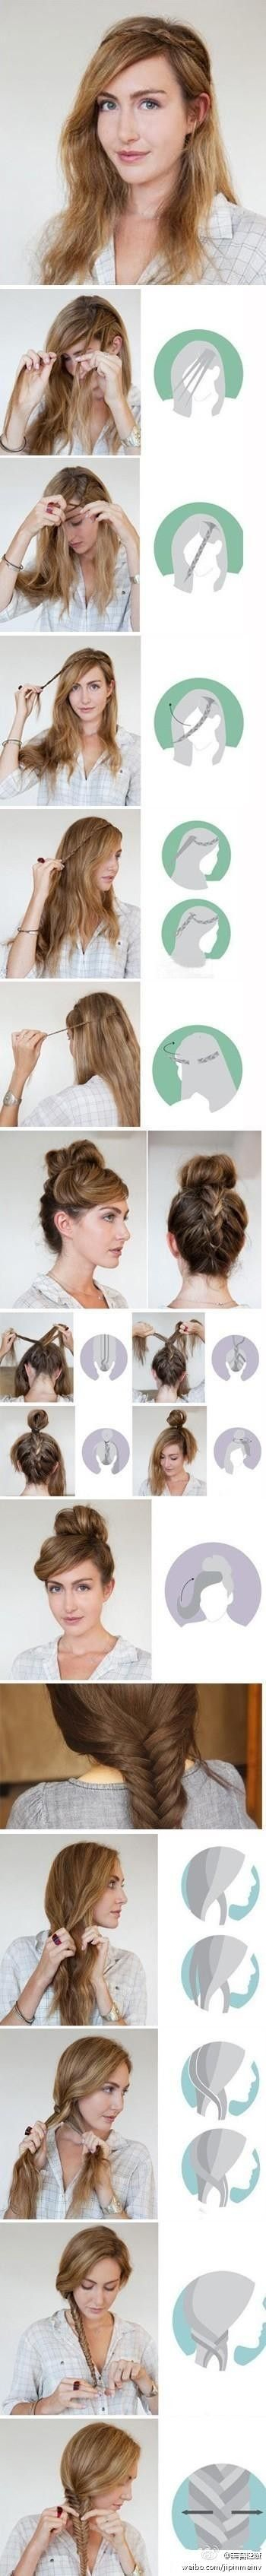 cute easy hairdos: cute easy hairdos